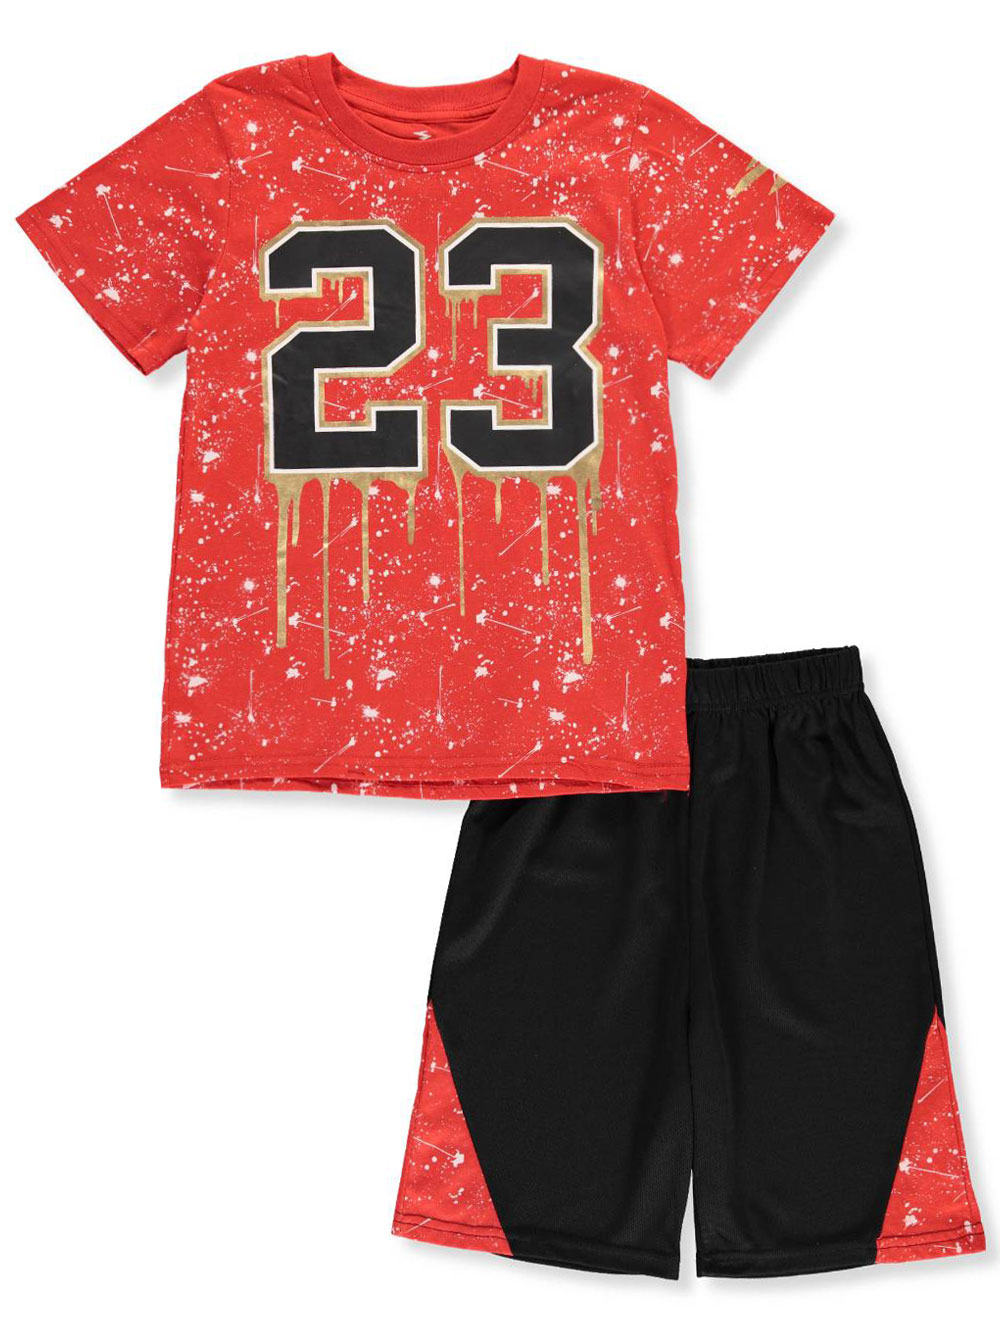 82035c599 Boys' 2-Piece Shorts Set Outfit by S1ope in blue/black and red/black ...